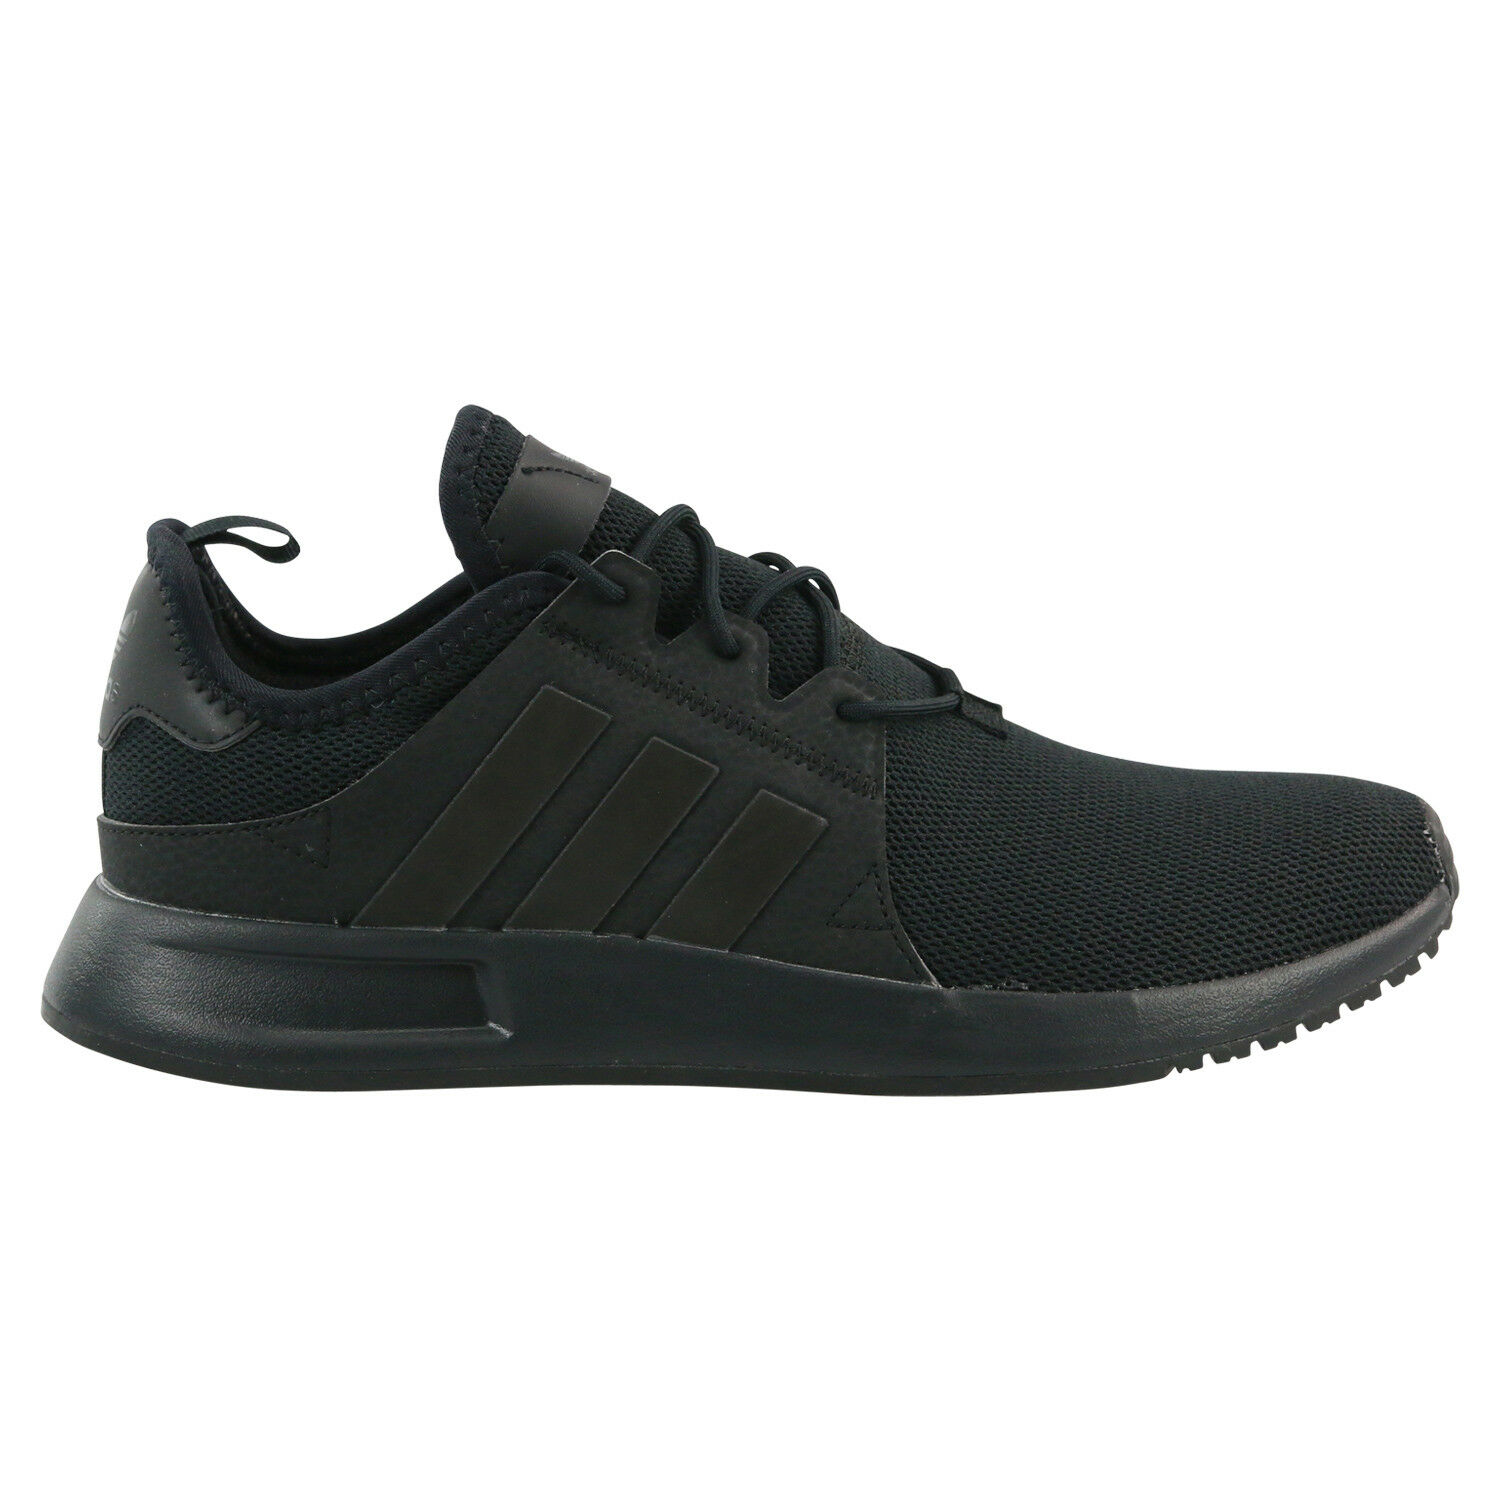 Adidas Zapatillas Originals x by9260 PLR Zapatillas Adidas negro unisex by9260 f41104